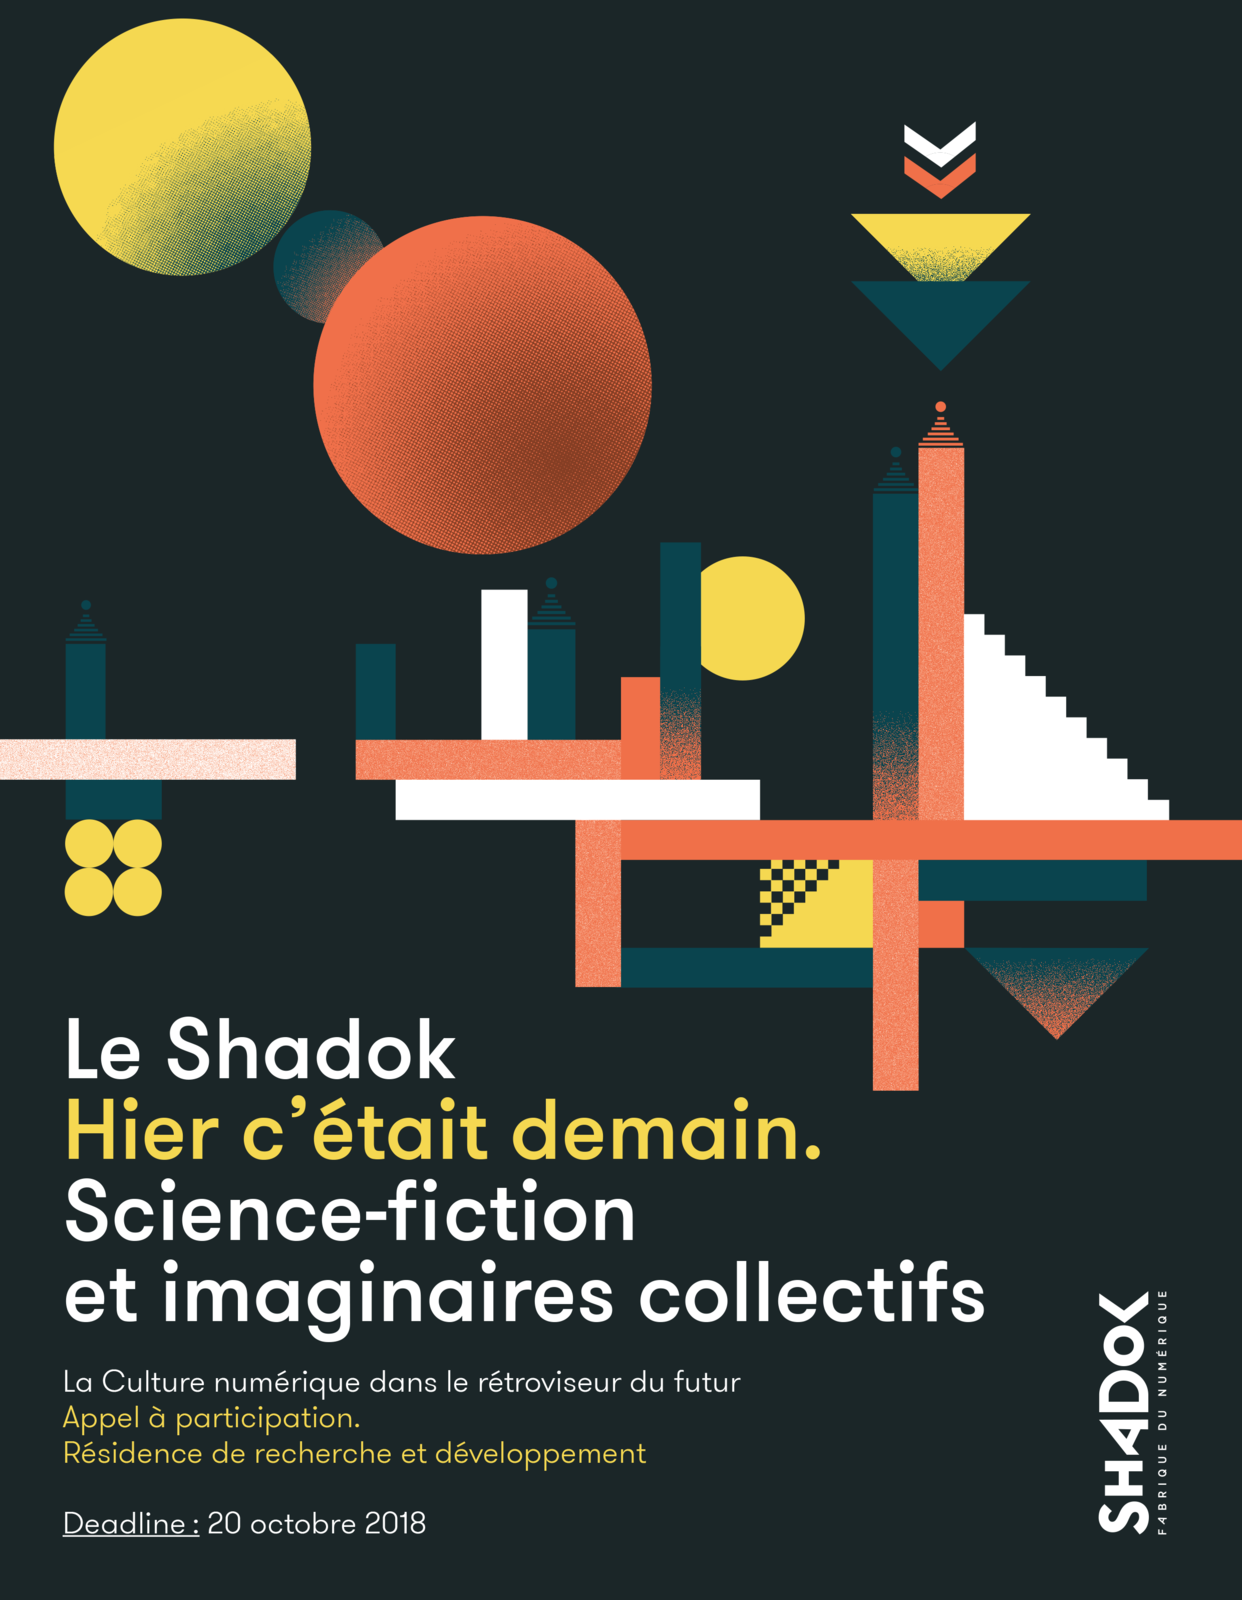 Appel à participations – Science-fiction et imaginaires collectifs au Shadok